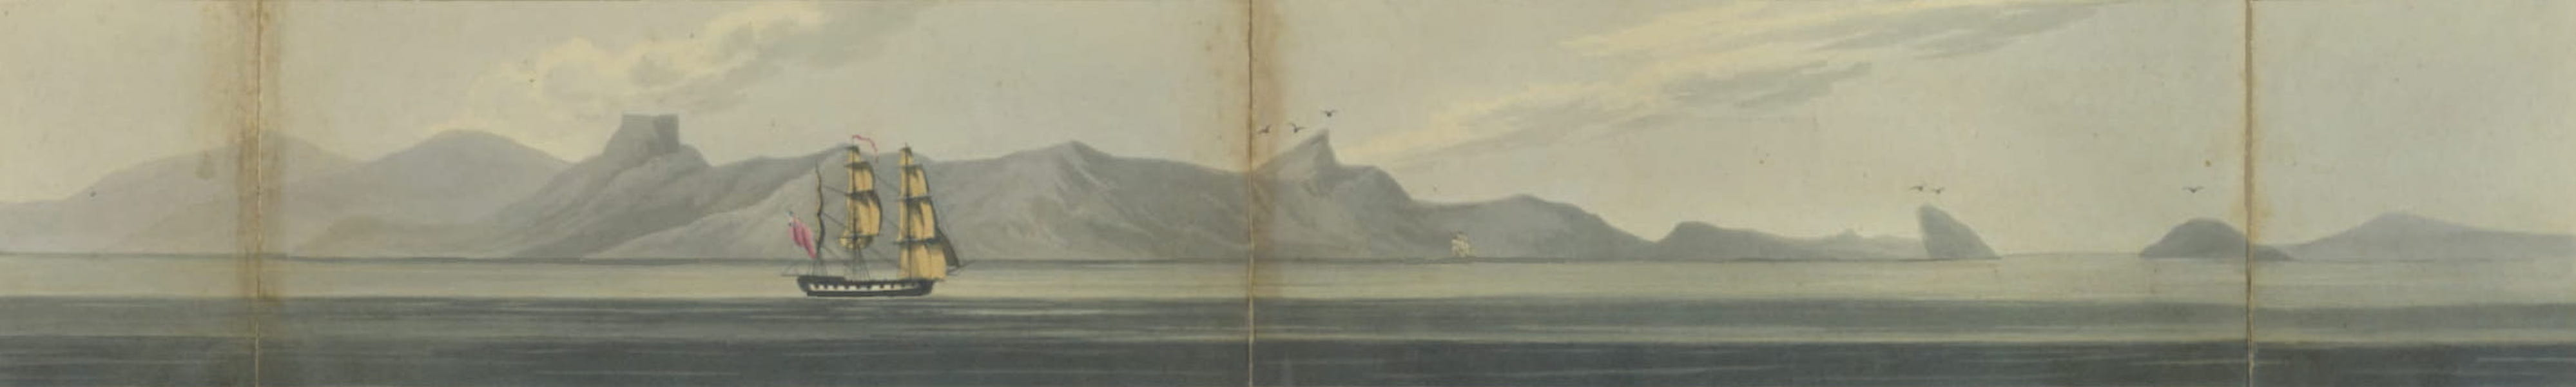 Views and Costumes of the City and Neighbourhood of Rio de Janeiro - Approach to Rio de Janeiro, from the Westward toward Sugar Loaf, about Four Leagues Distant (1822)